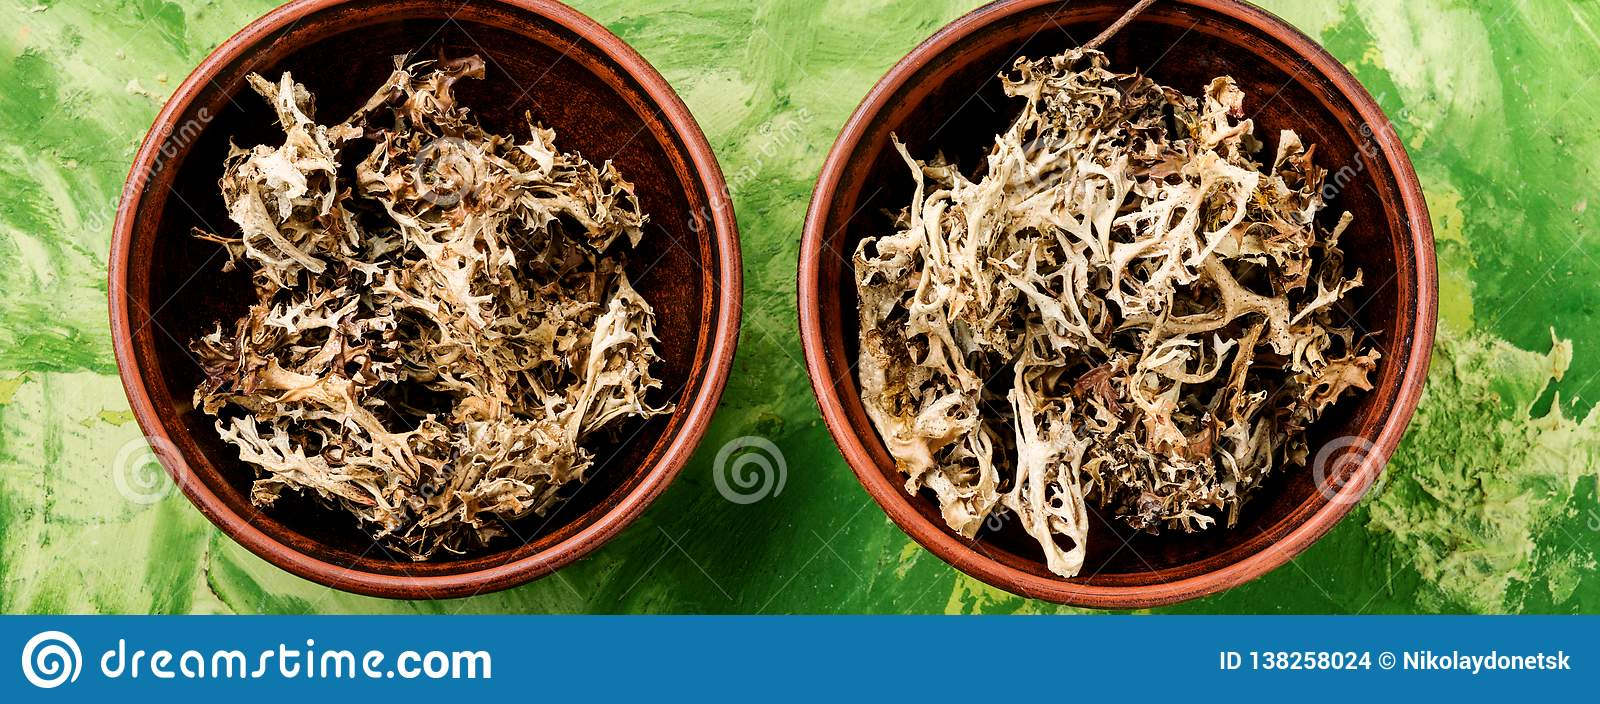 Dried Icelandic Medicinal Moss Stock Photo Image Of Homeopathic